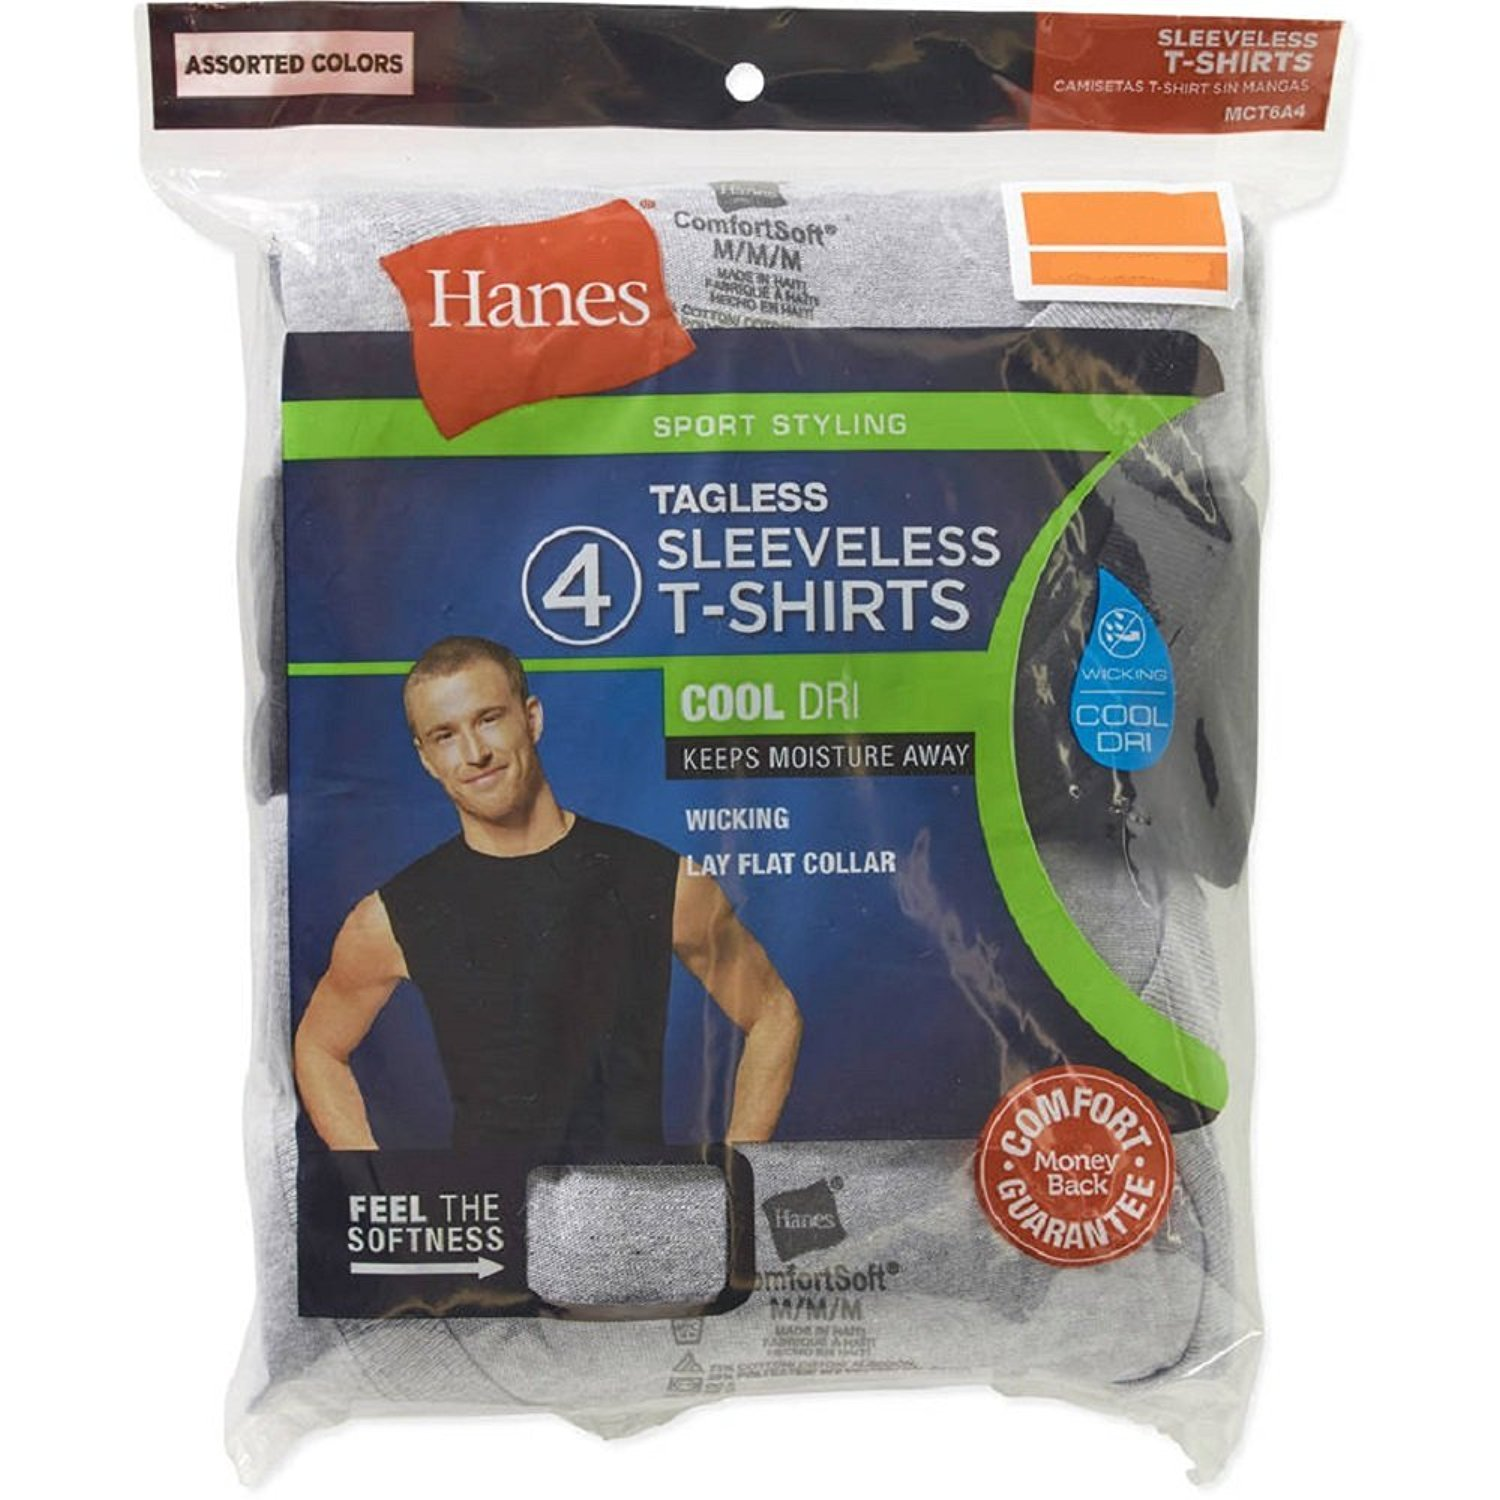 Hanesbrand Inc. Hanes Mens Sport Styling Cotton Sleeveless T-Shirts w/Cool Dri 4-Pack (Small (34-36